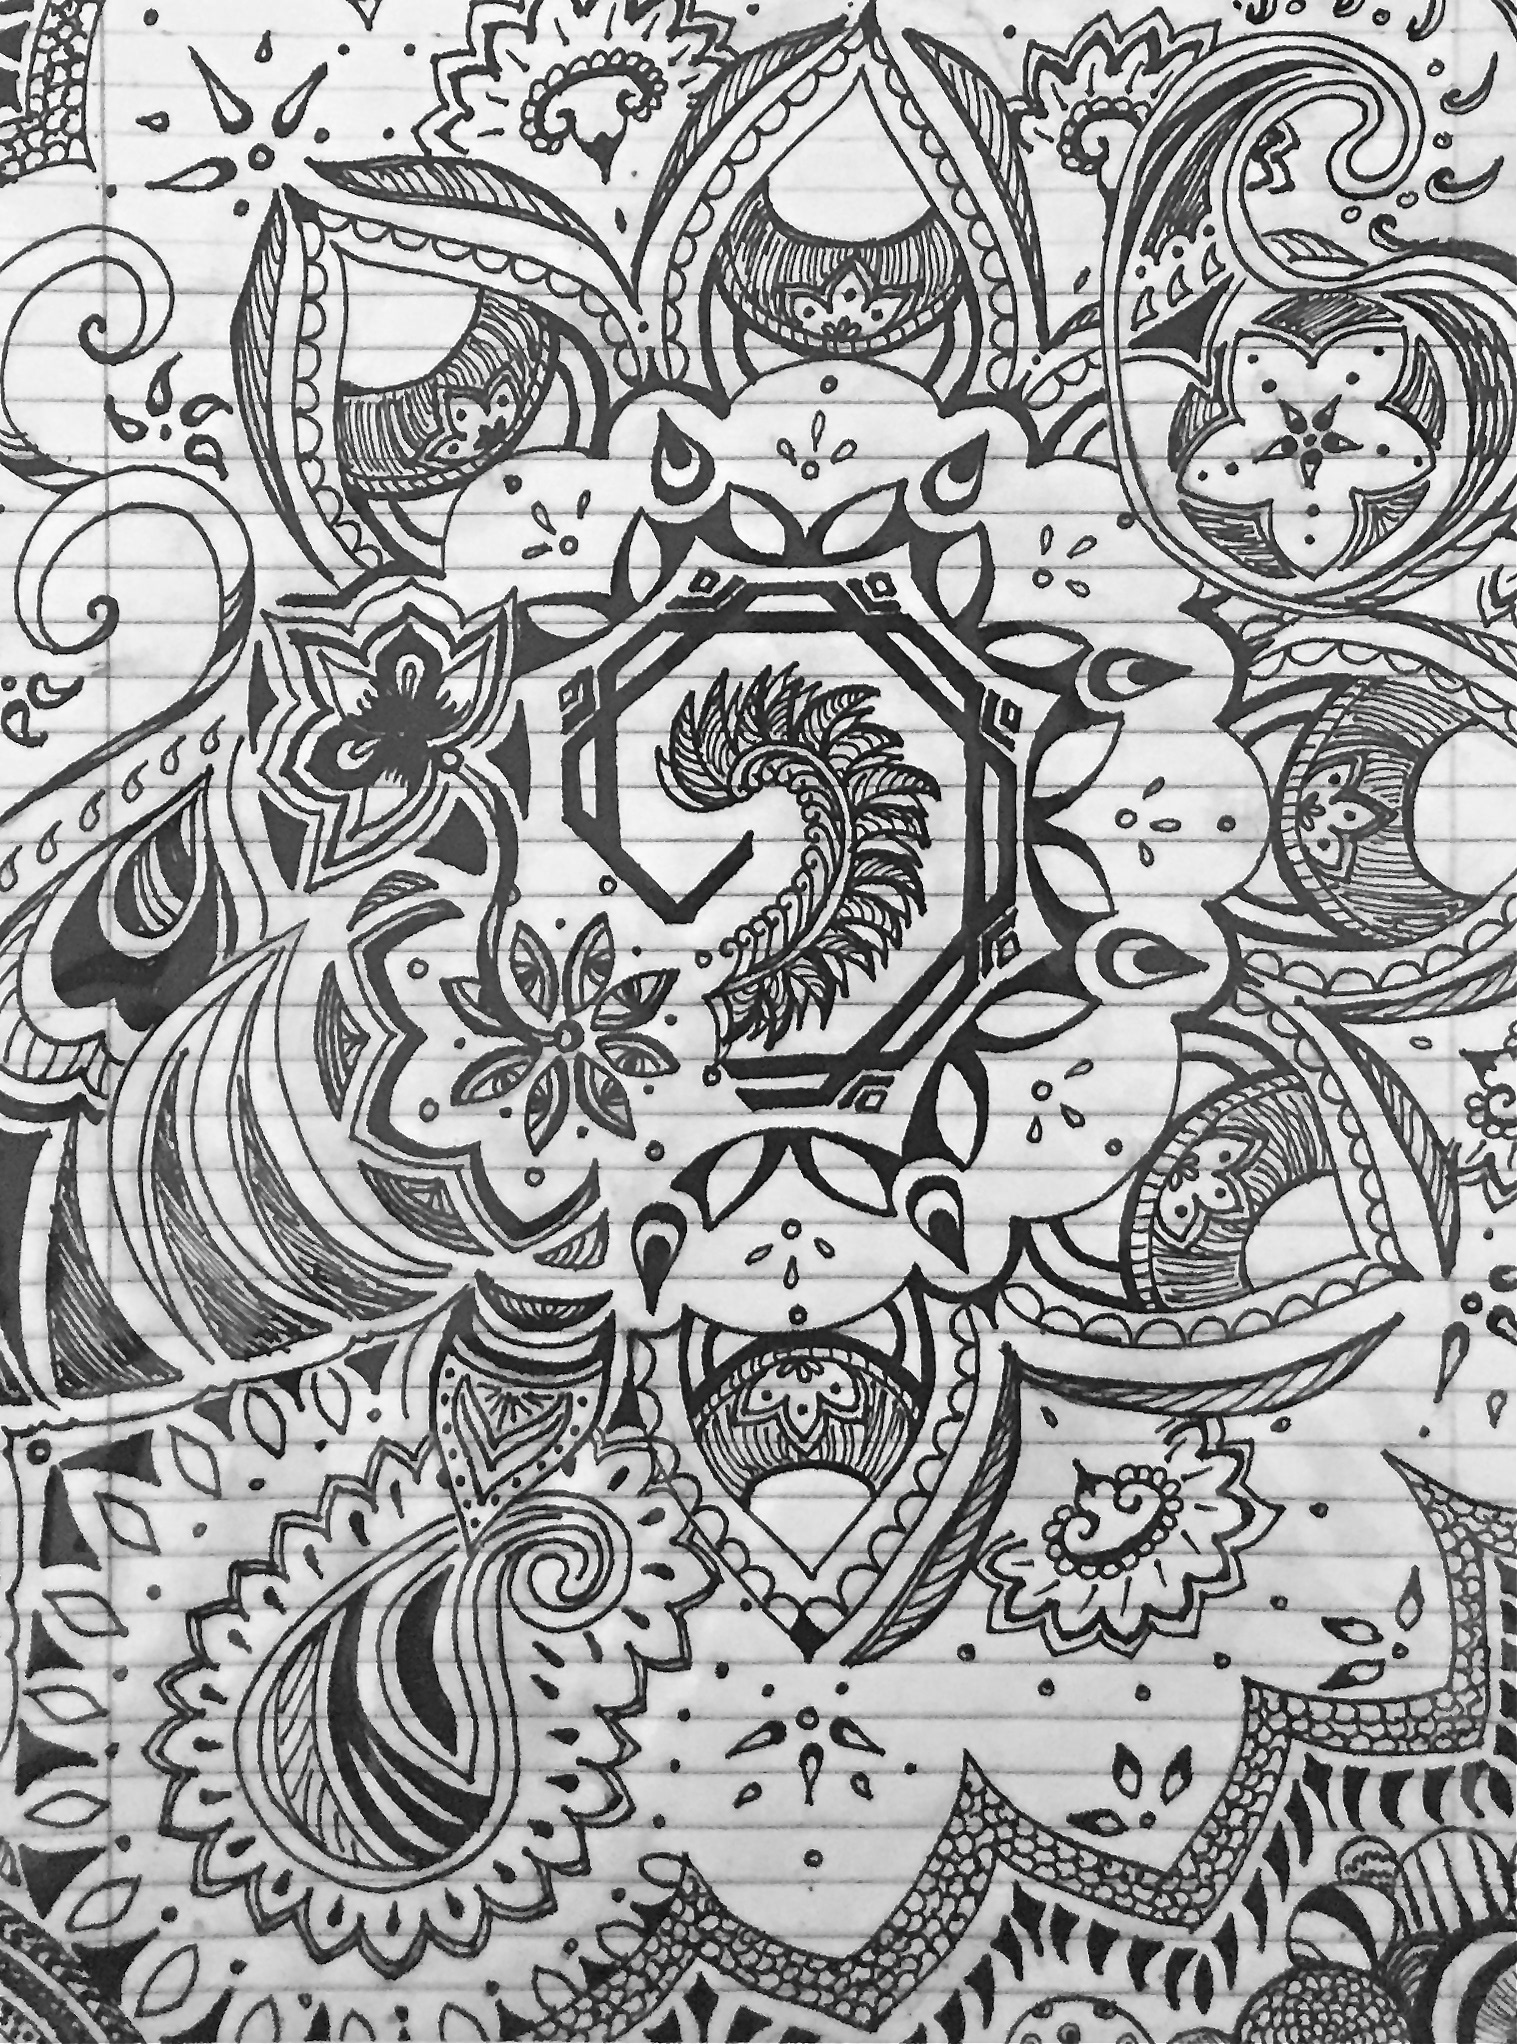 Pen And Ink Designs Done By Hand